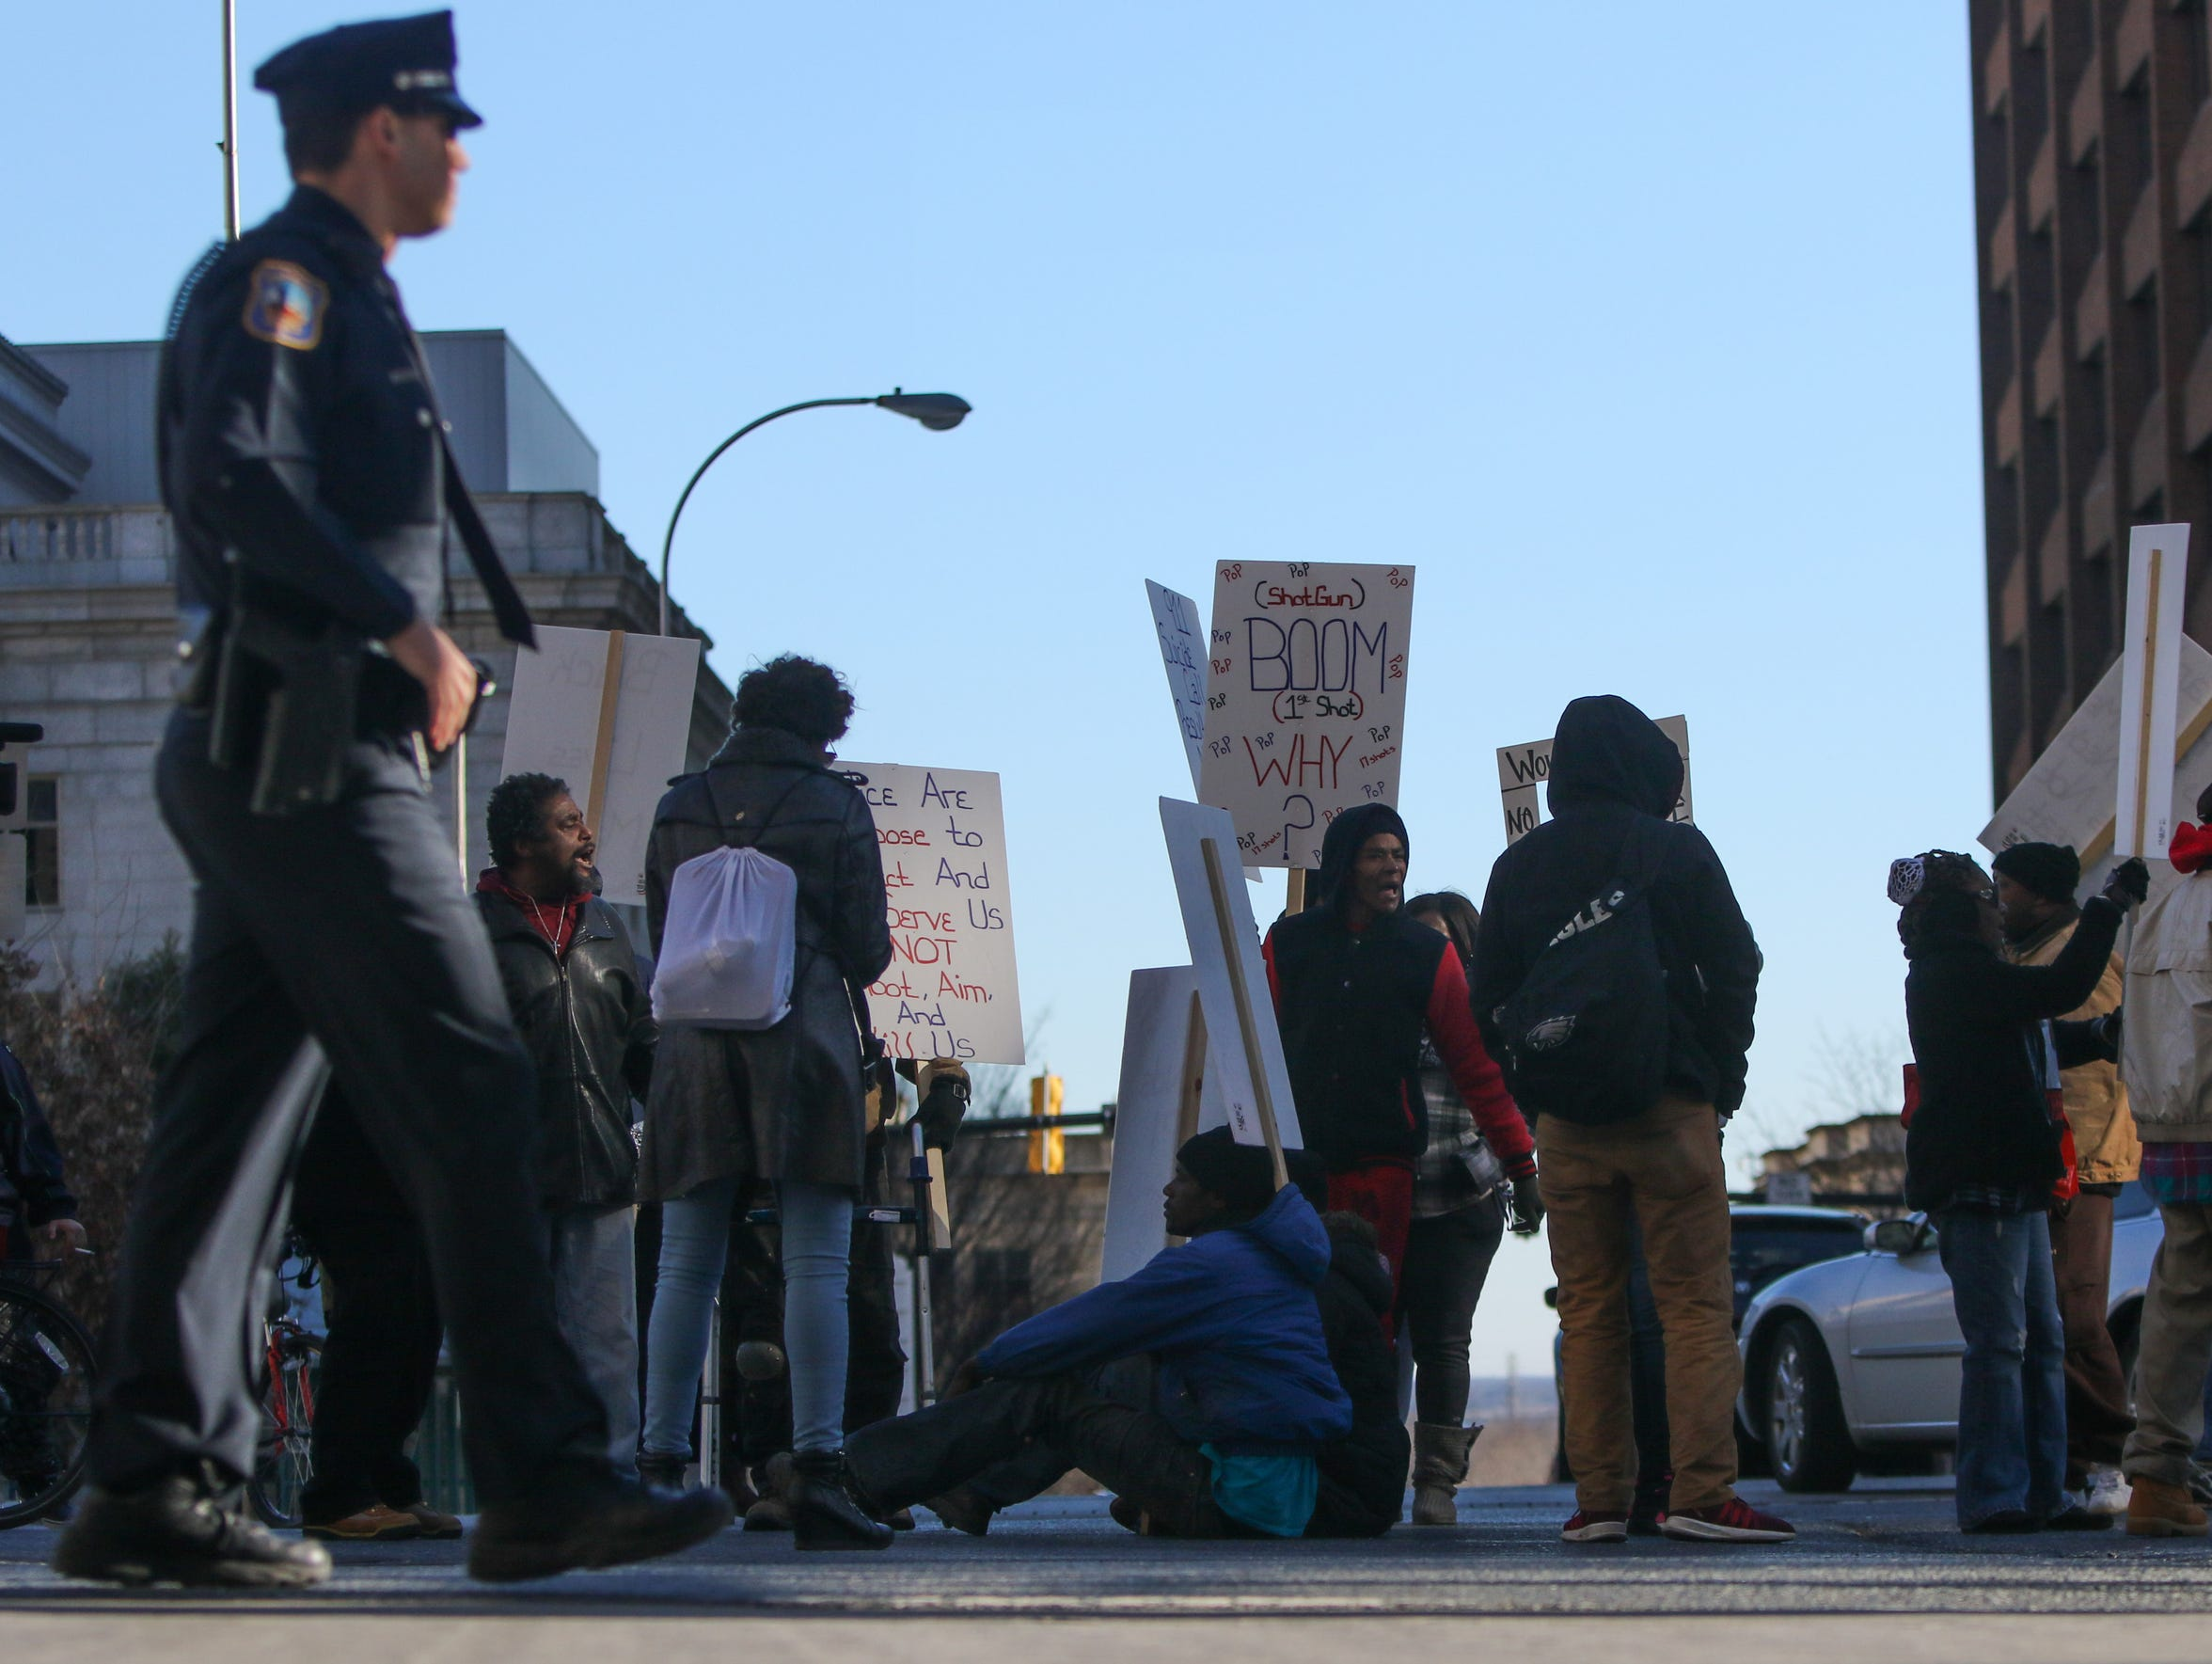 McDole protestors shut down the intersection of Market